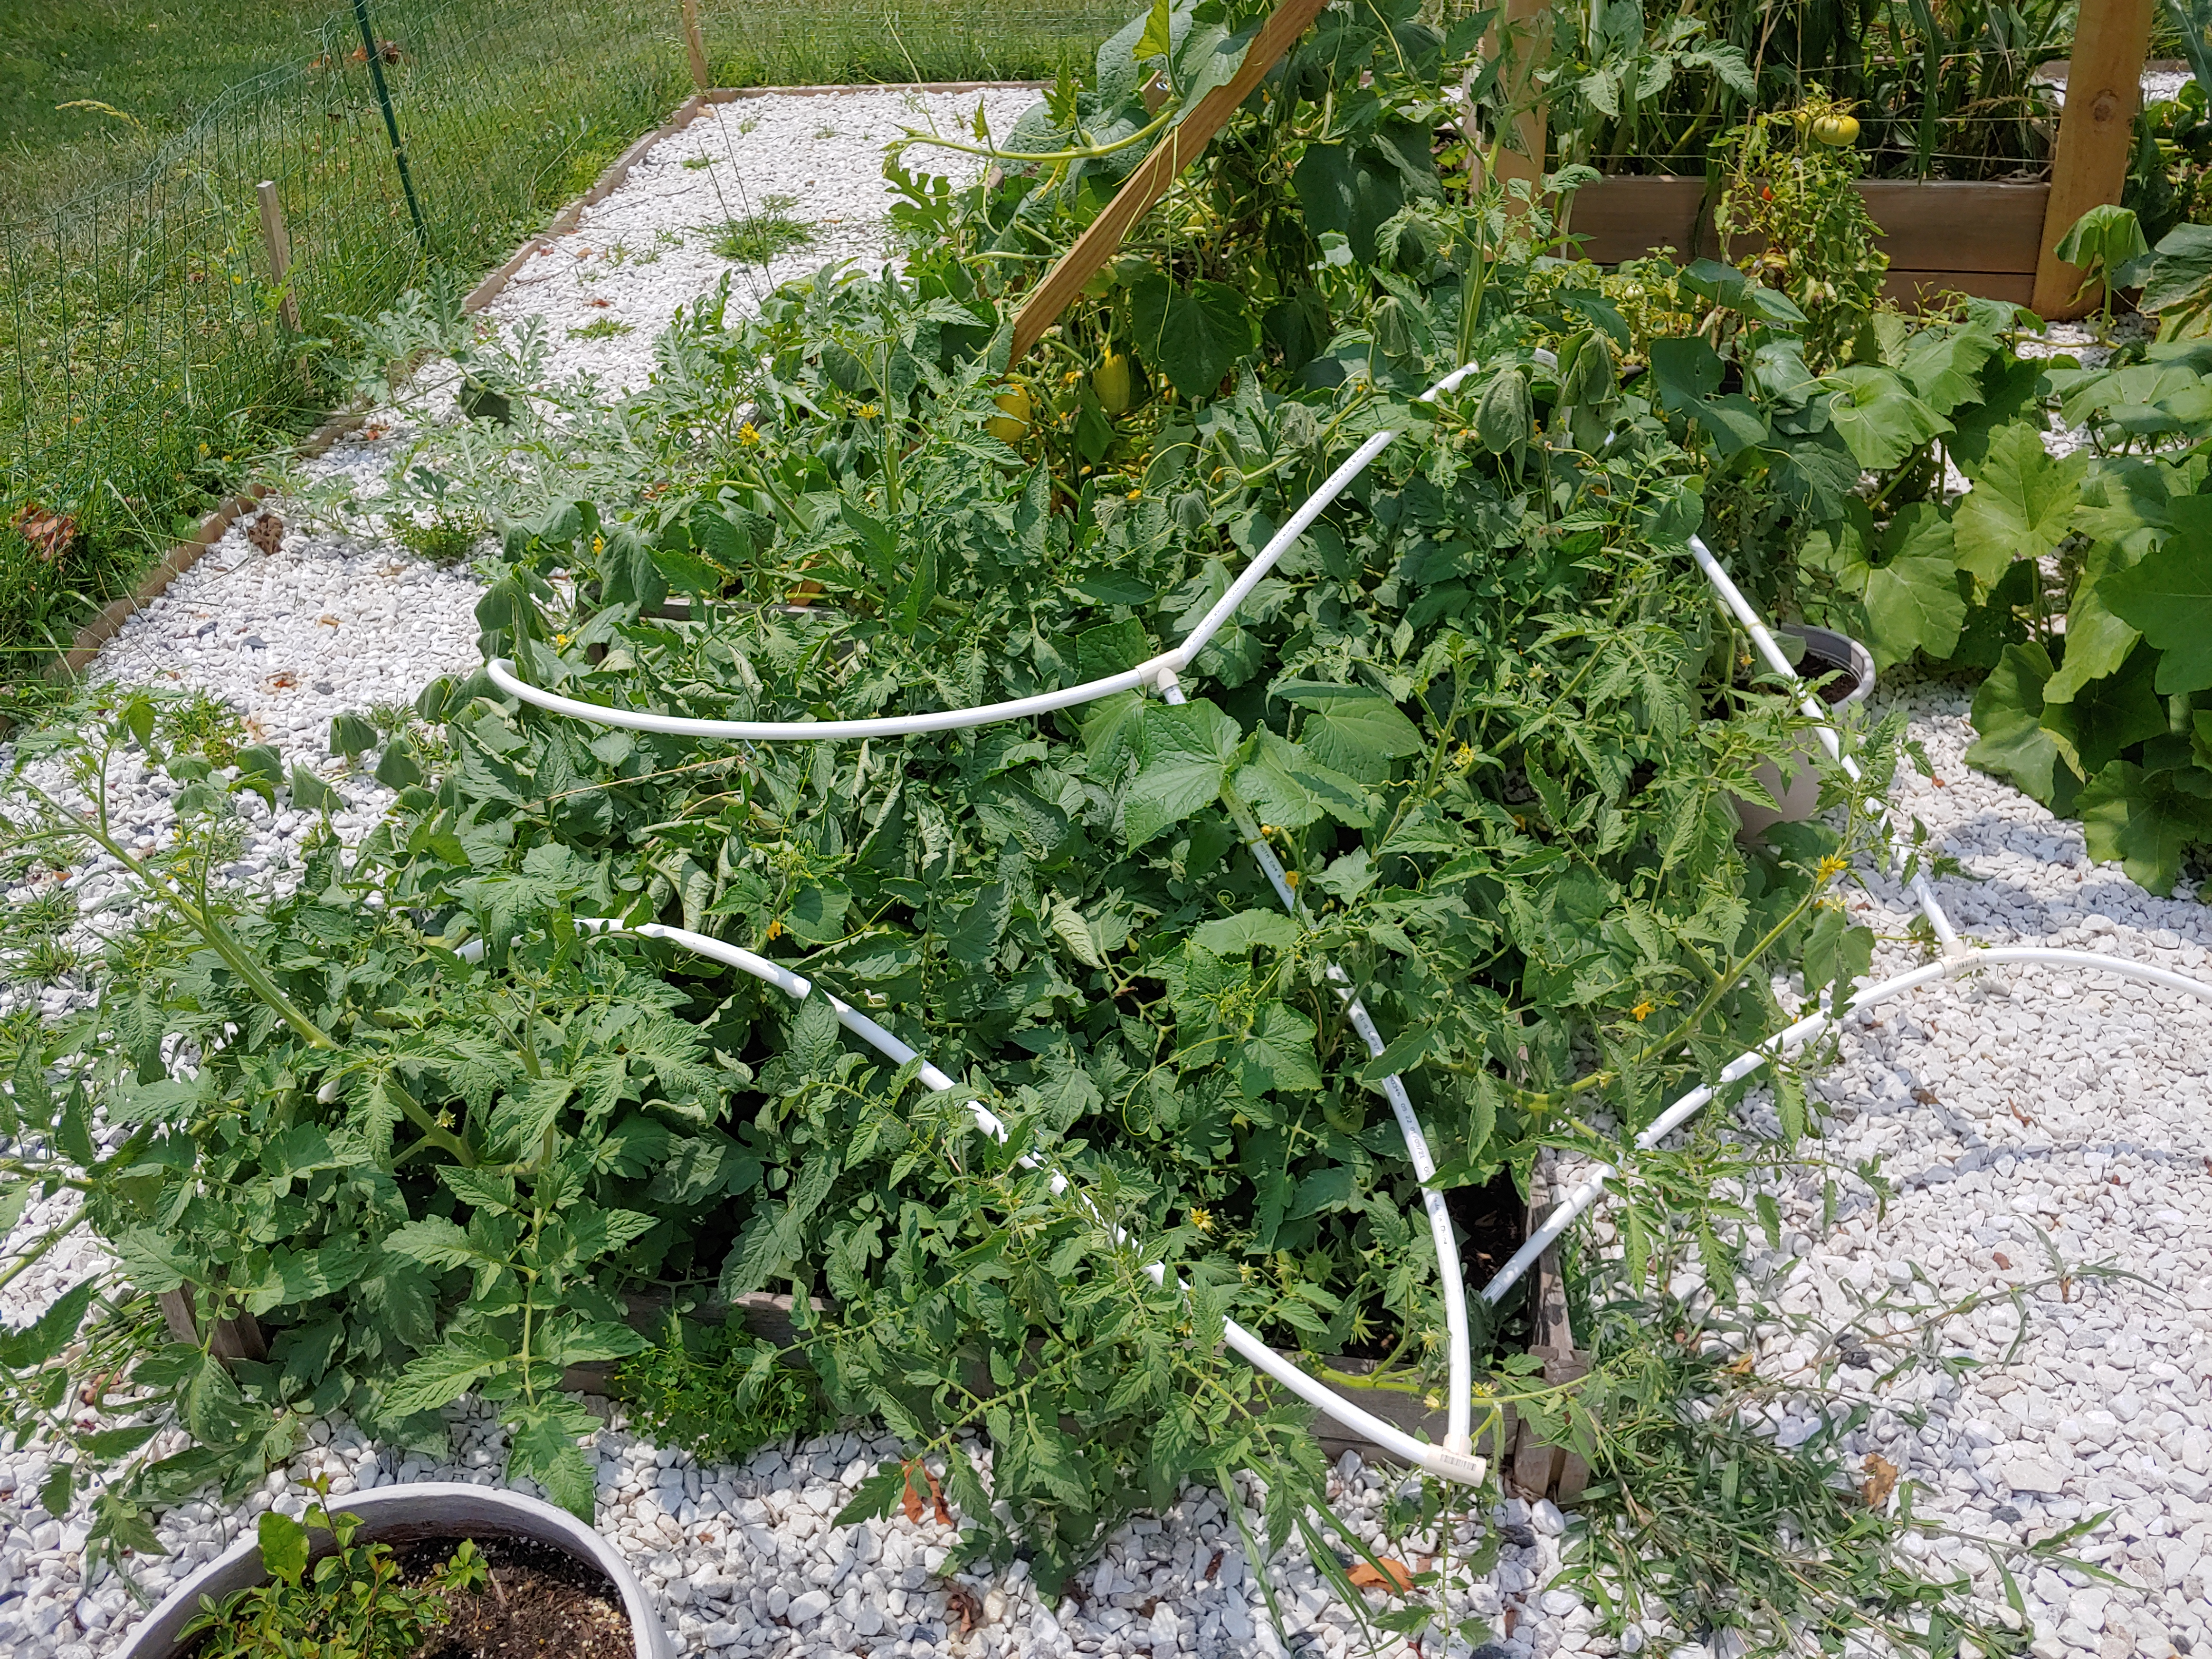 Collapsed tomato structure